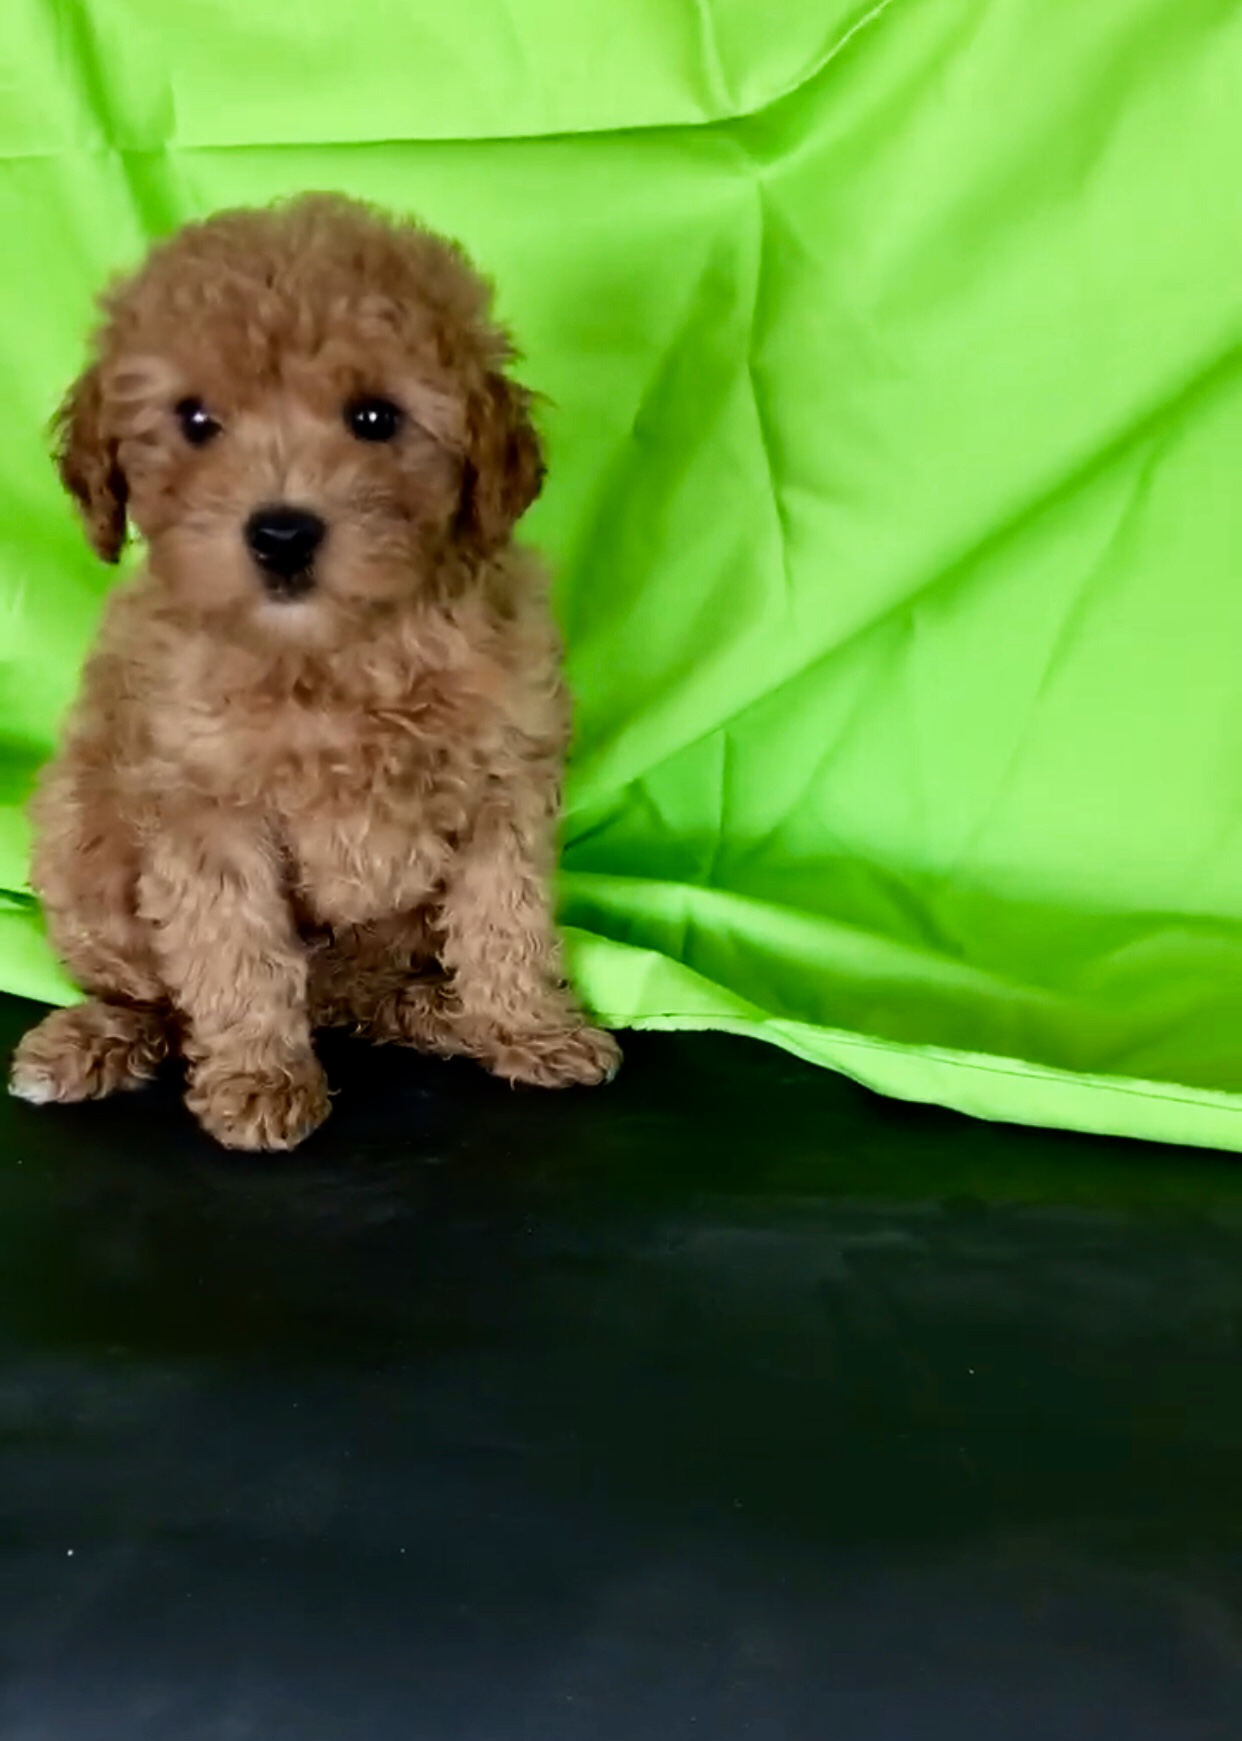 RARE MALTIPOO Red COLOR TEDDYBEAR FACE FULL GROWN 10LBSUP TO DATE ON SHOTSHOME RAISED PUPPY